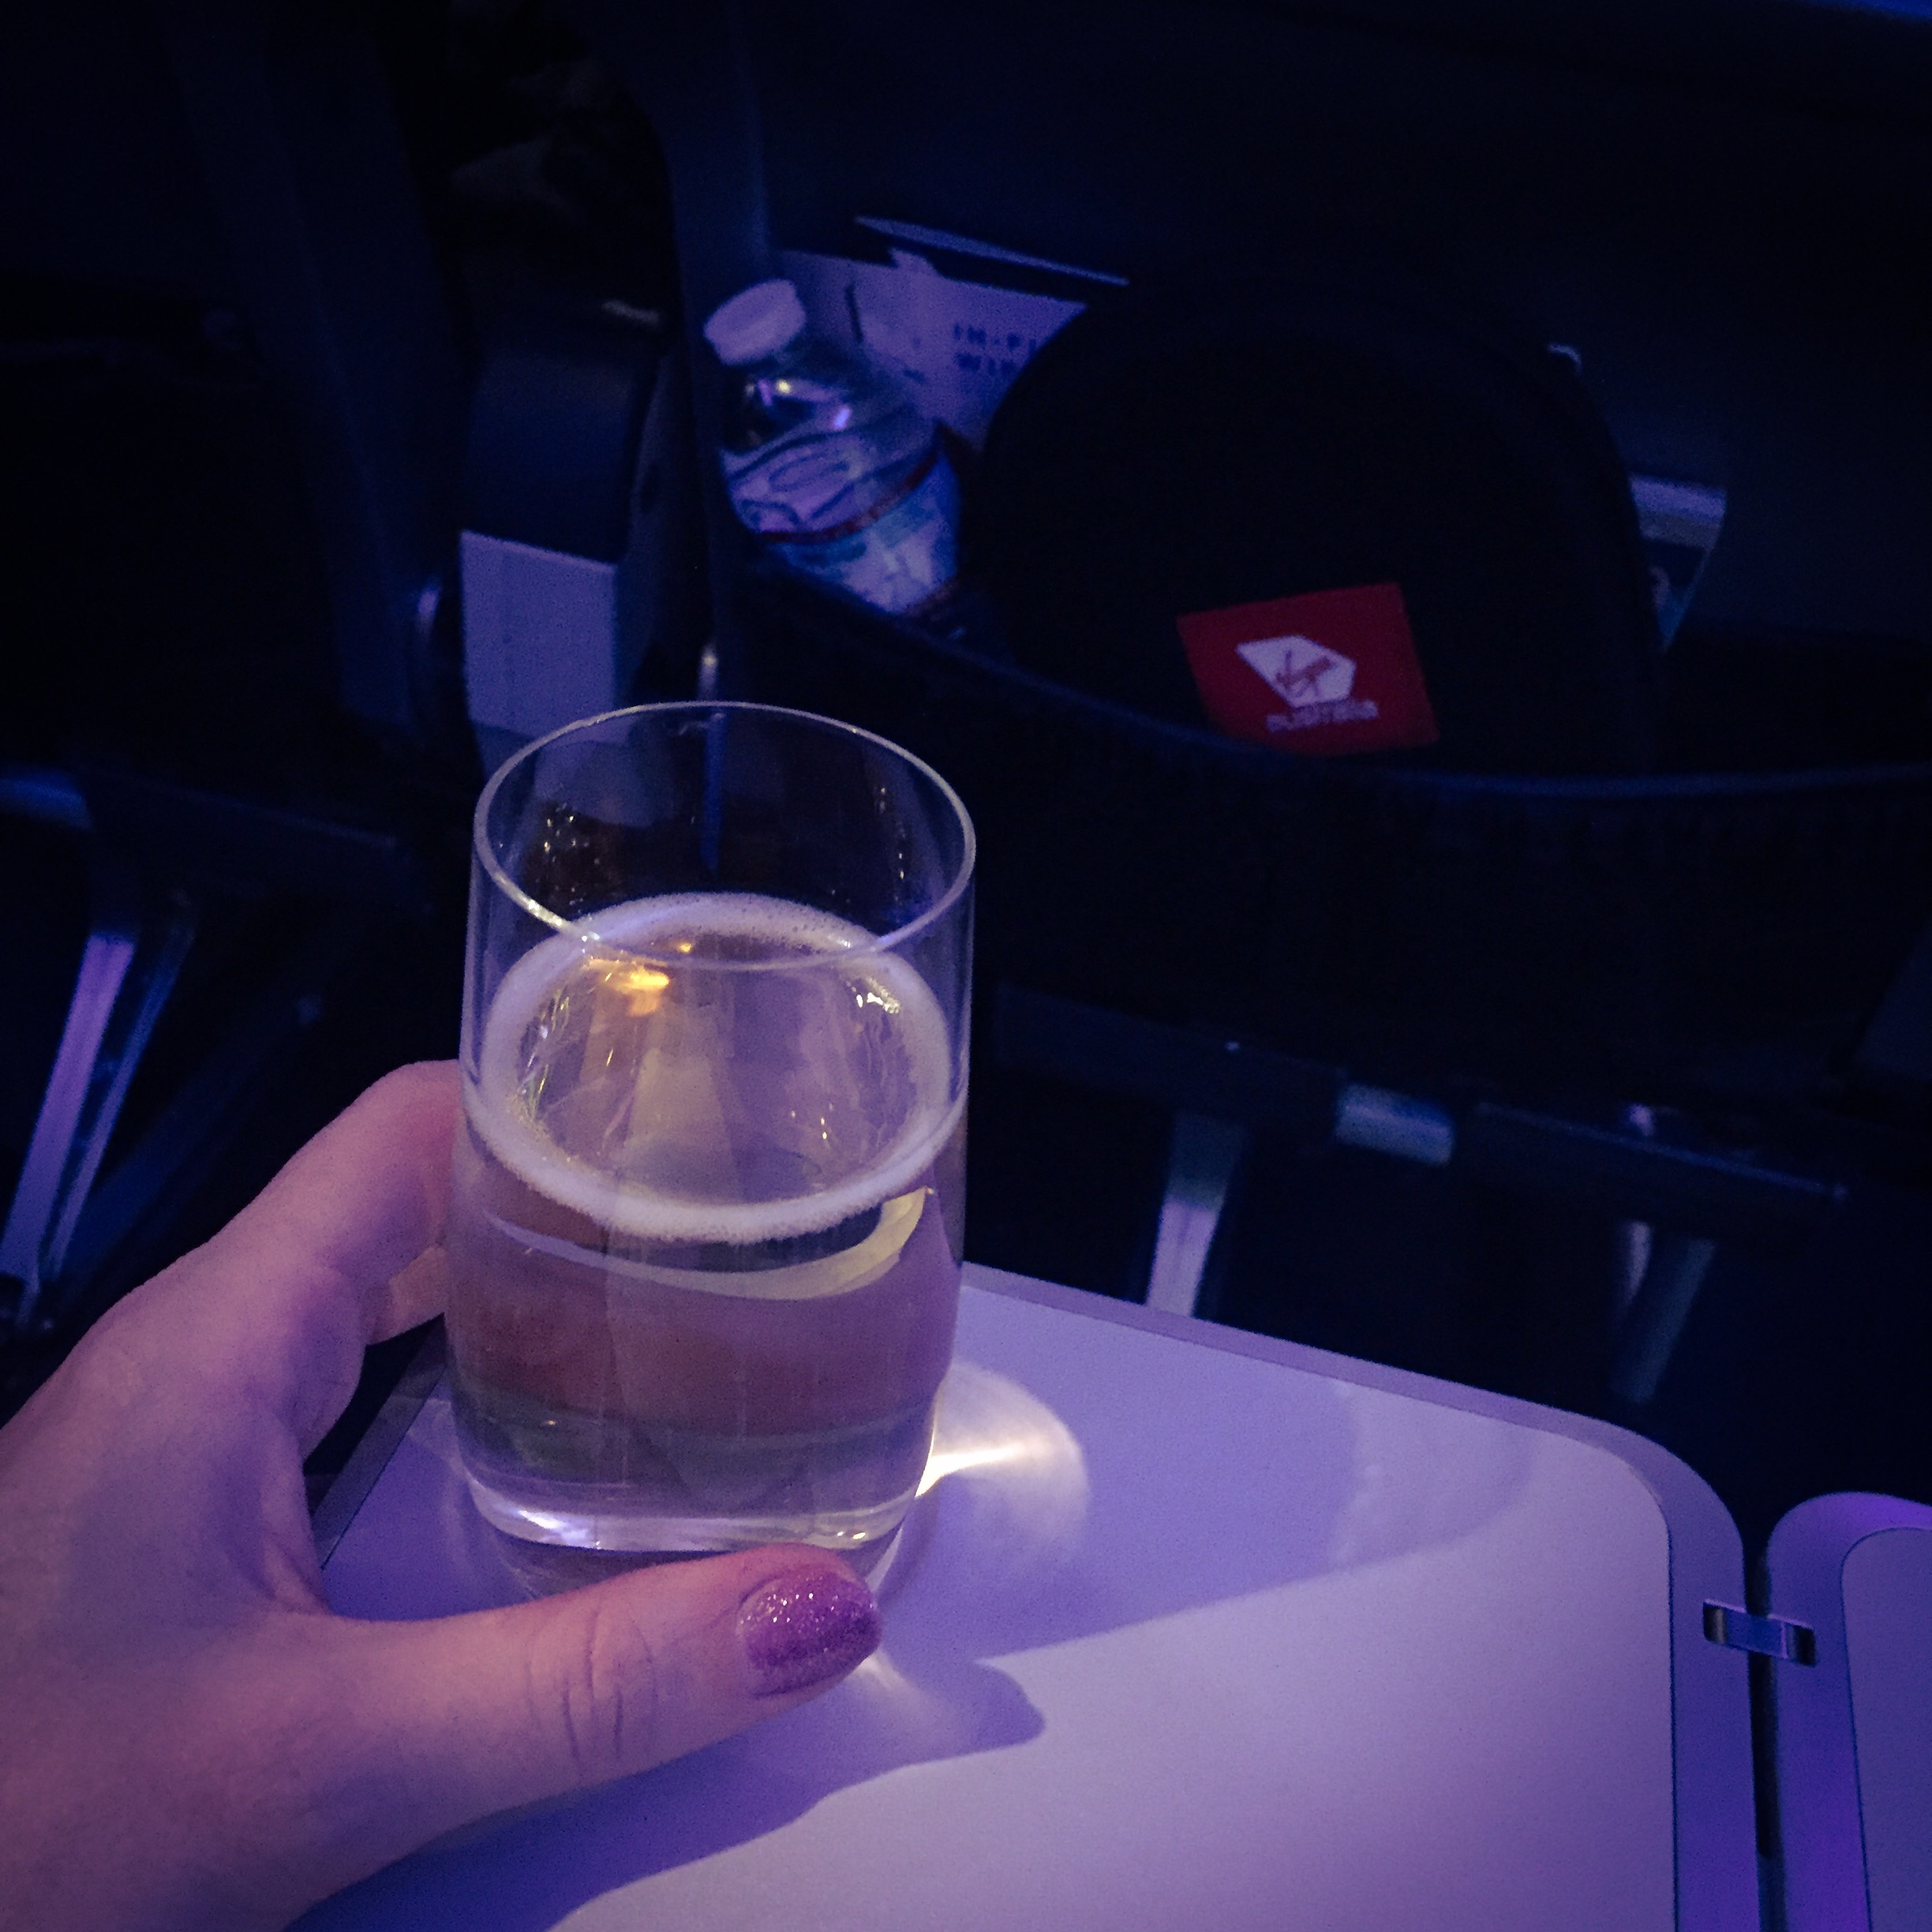 Emigrating to australia celebrate drinks on plane